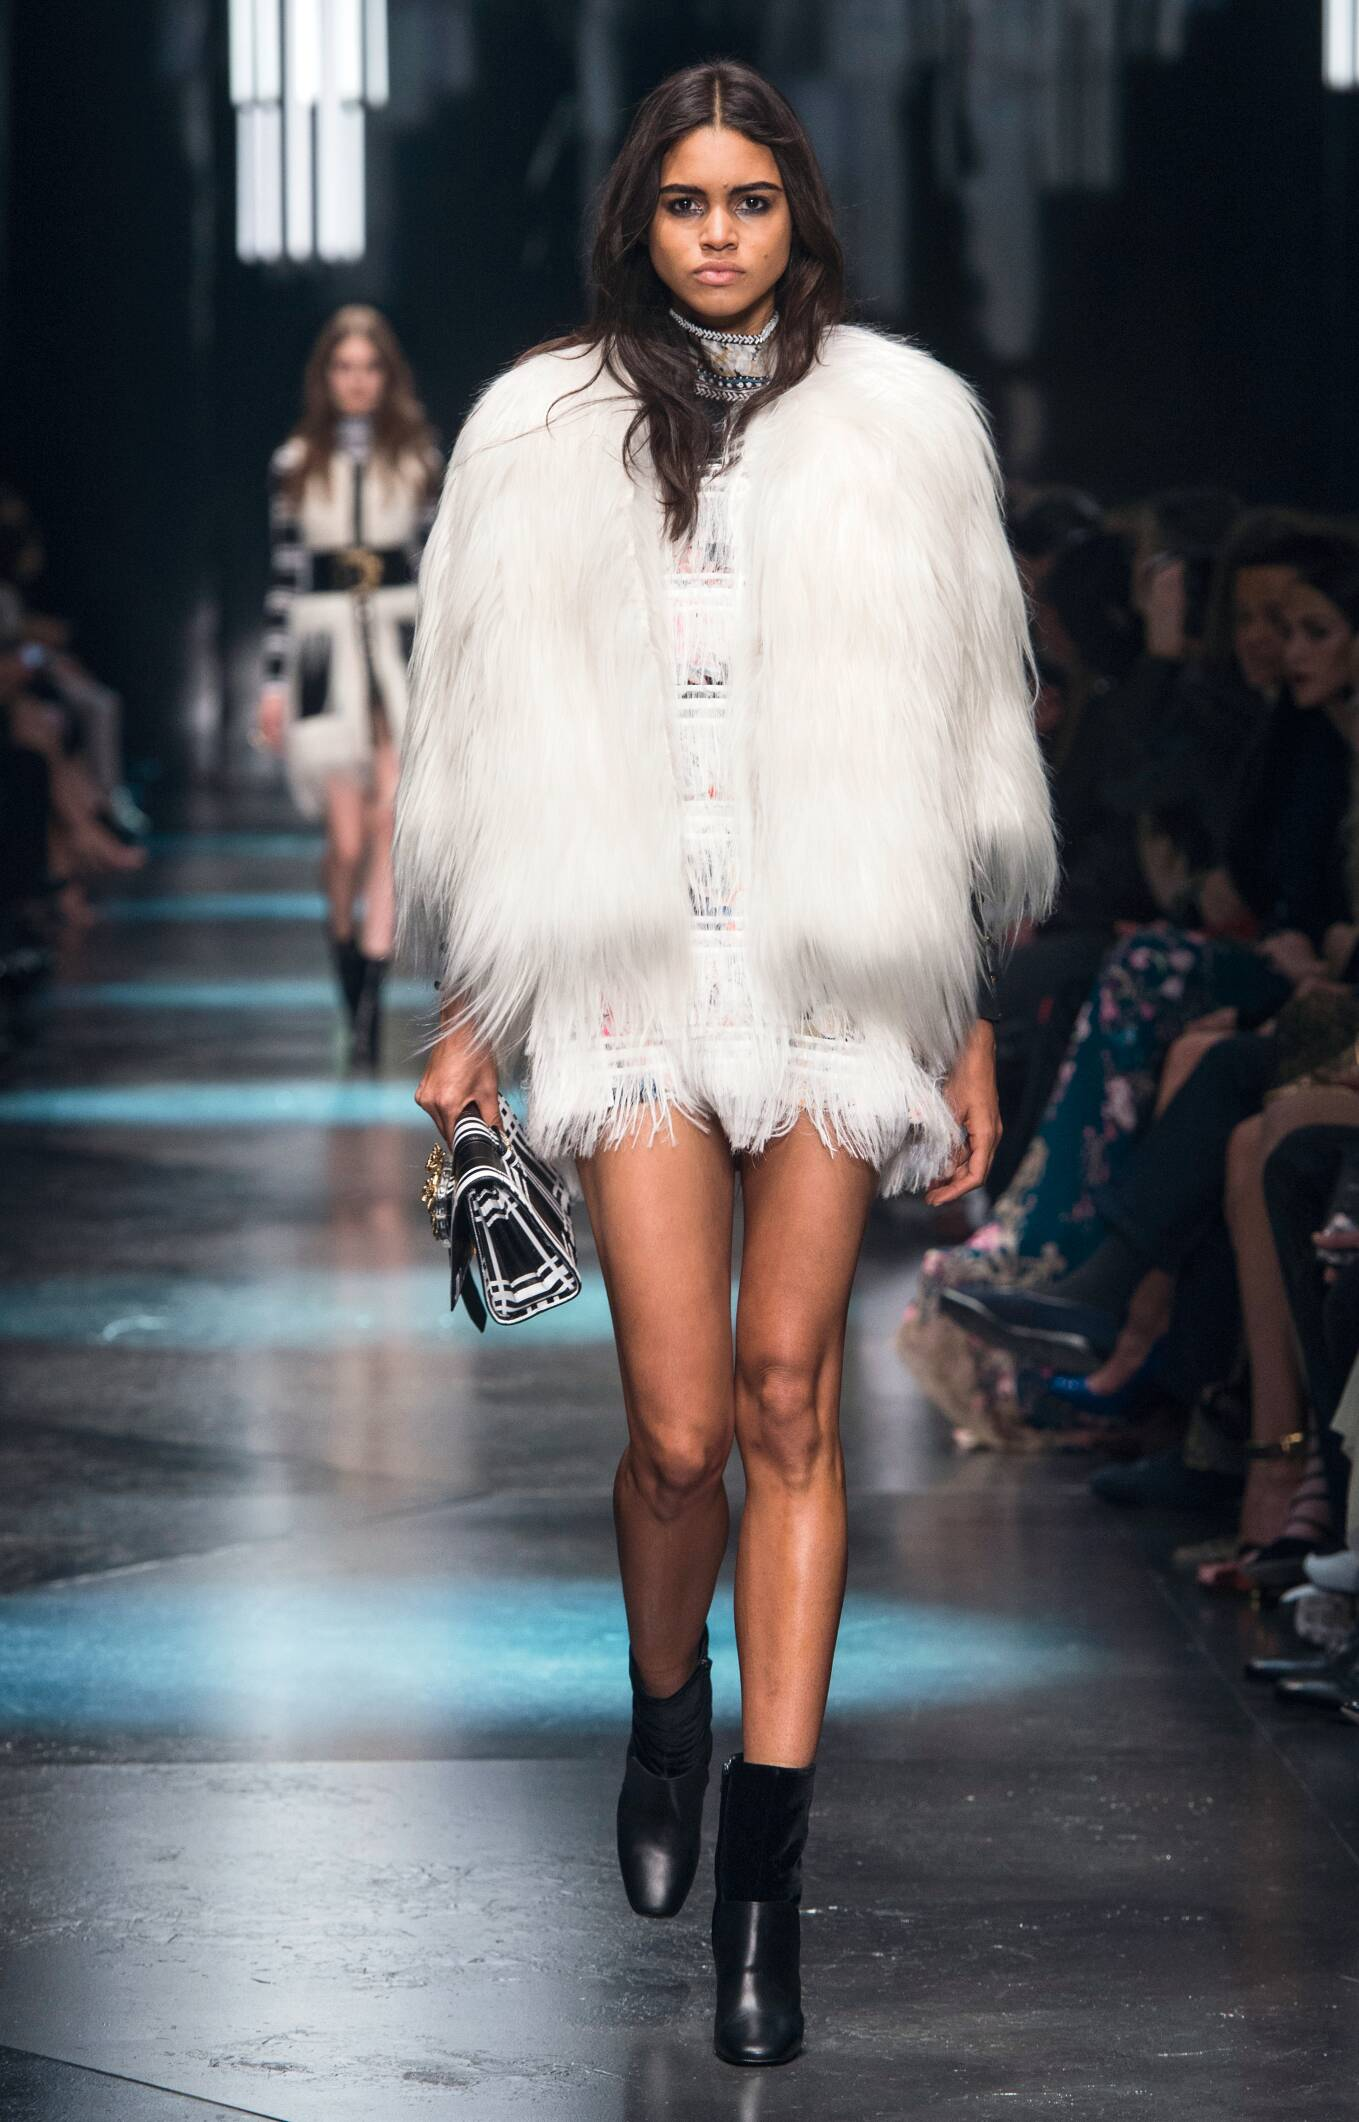 Roberto Cavalli Collection Winter 2015 Catwalk